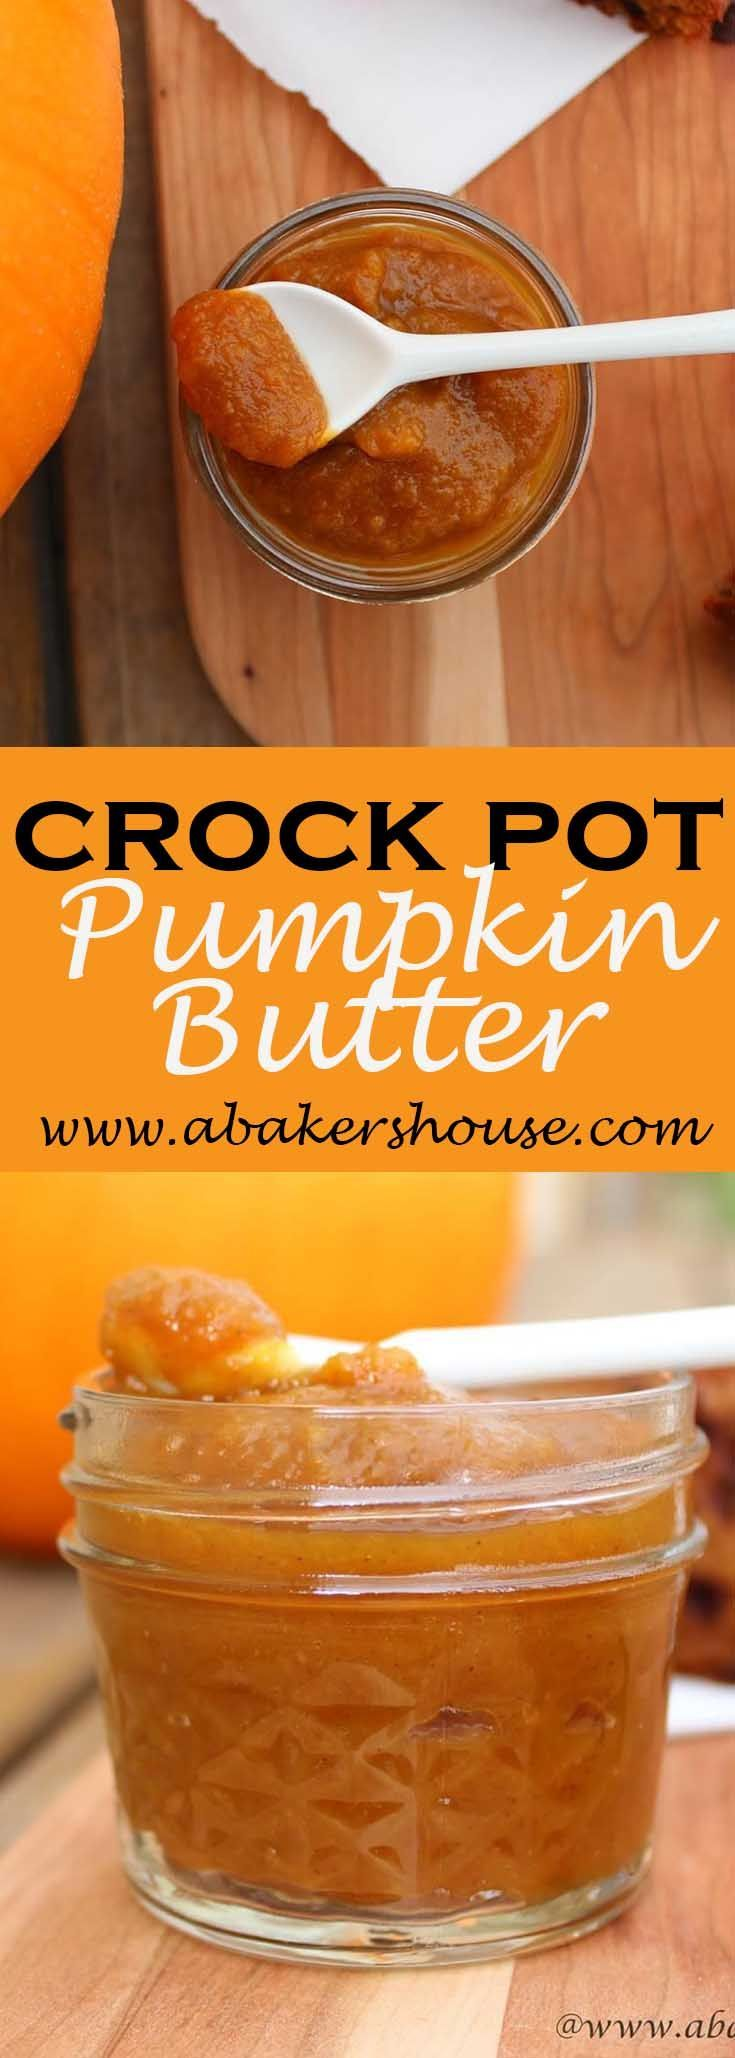 Pumpkin butter will find its way into your meals-- spread on toast, use instead of mayo on a turkey sandwich or drizzle it on top of ice cream. The crock pot makes easy work of this recipe.